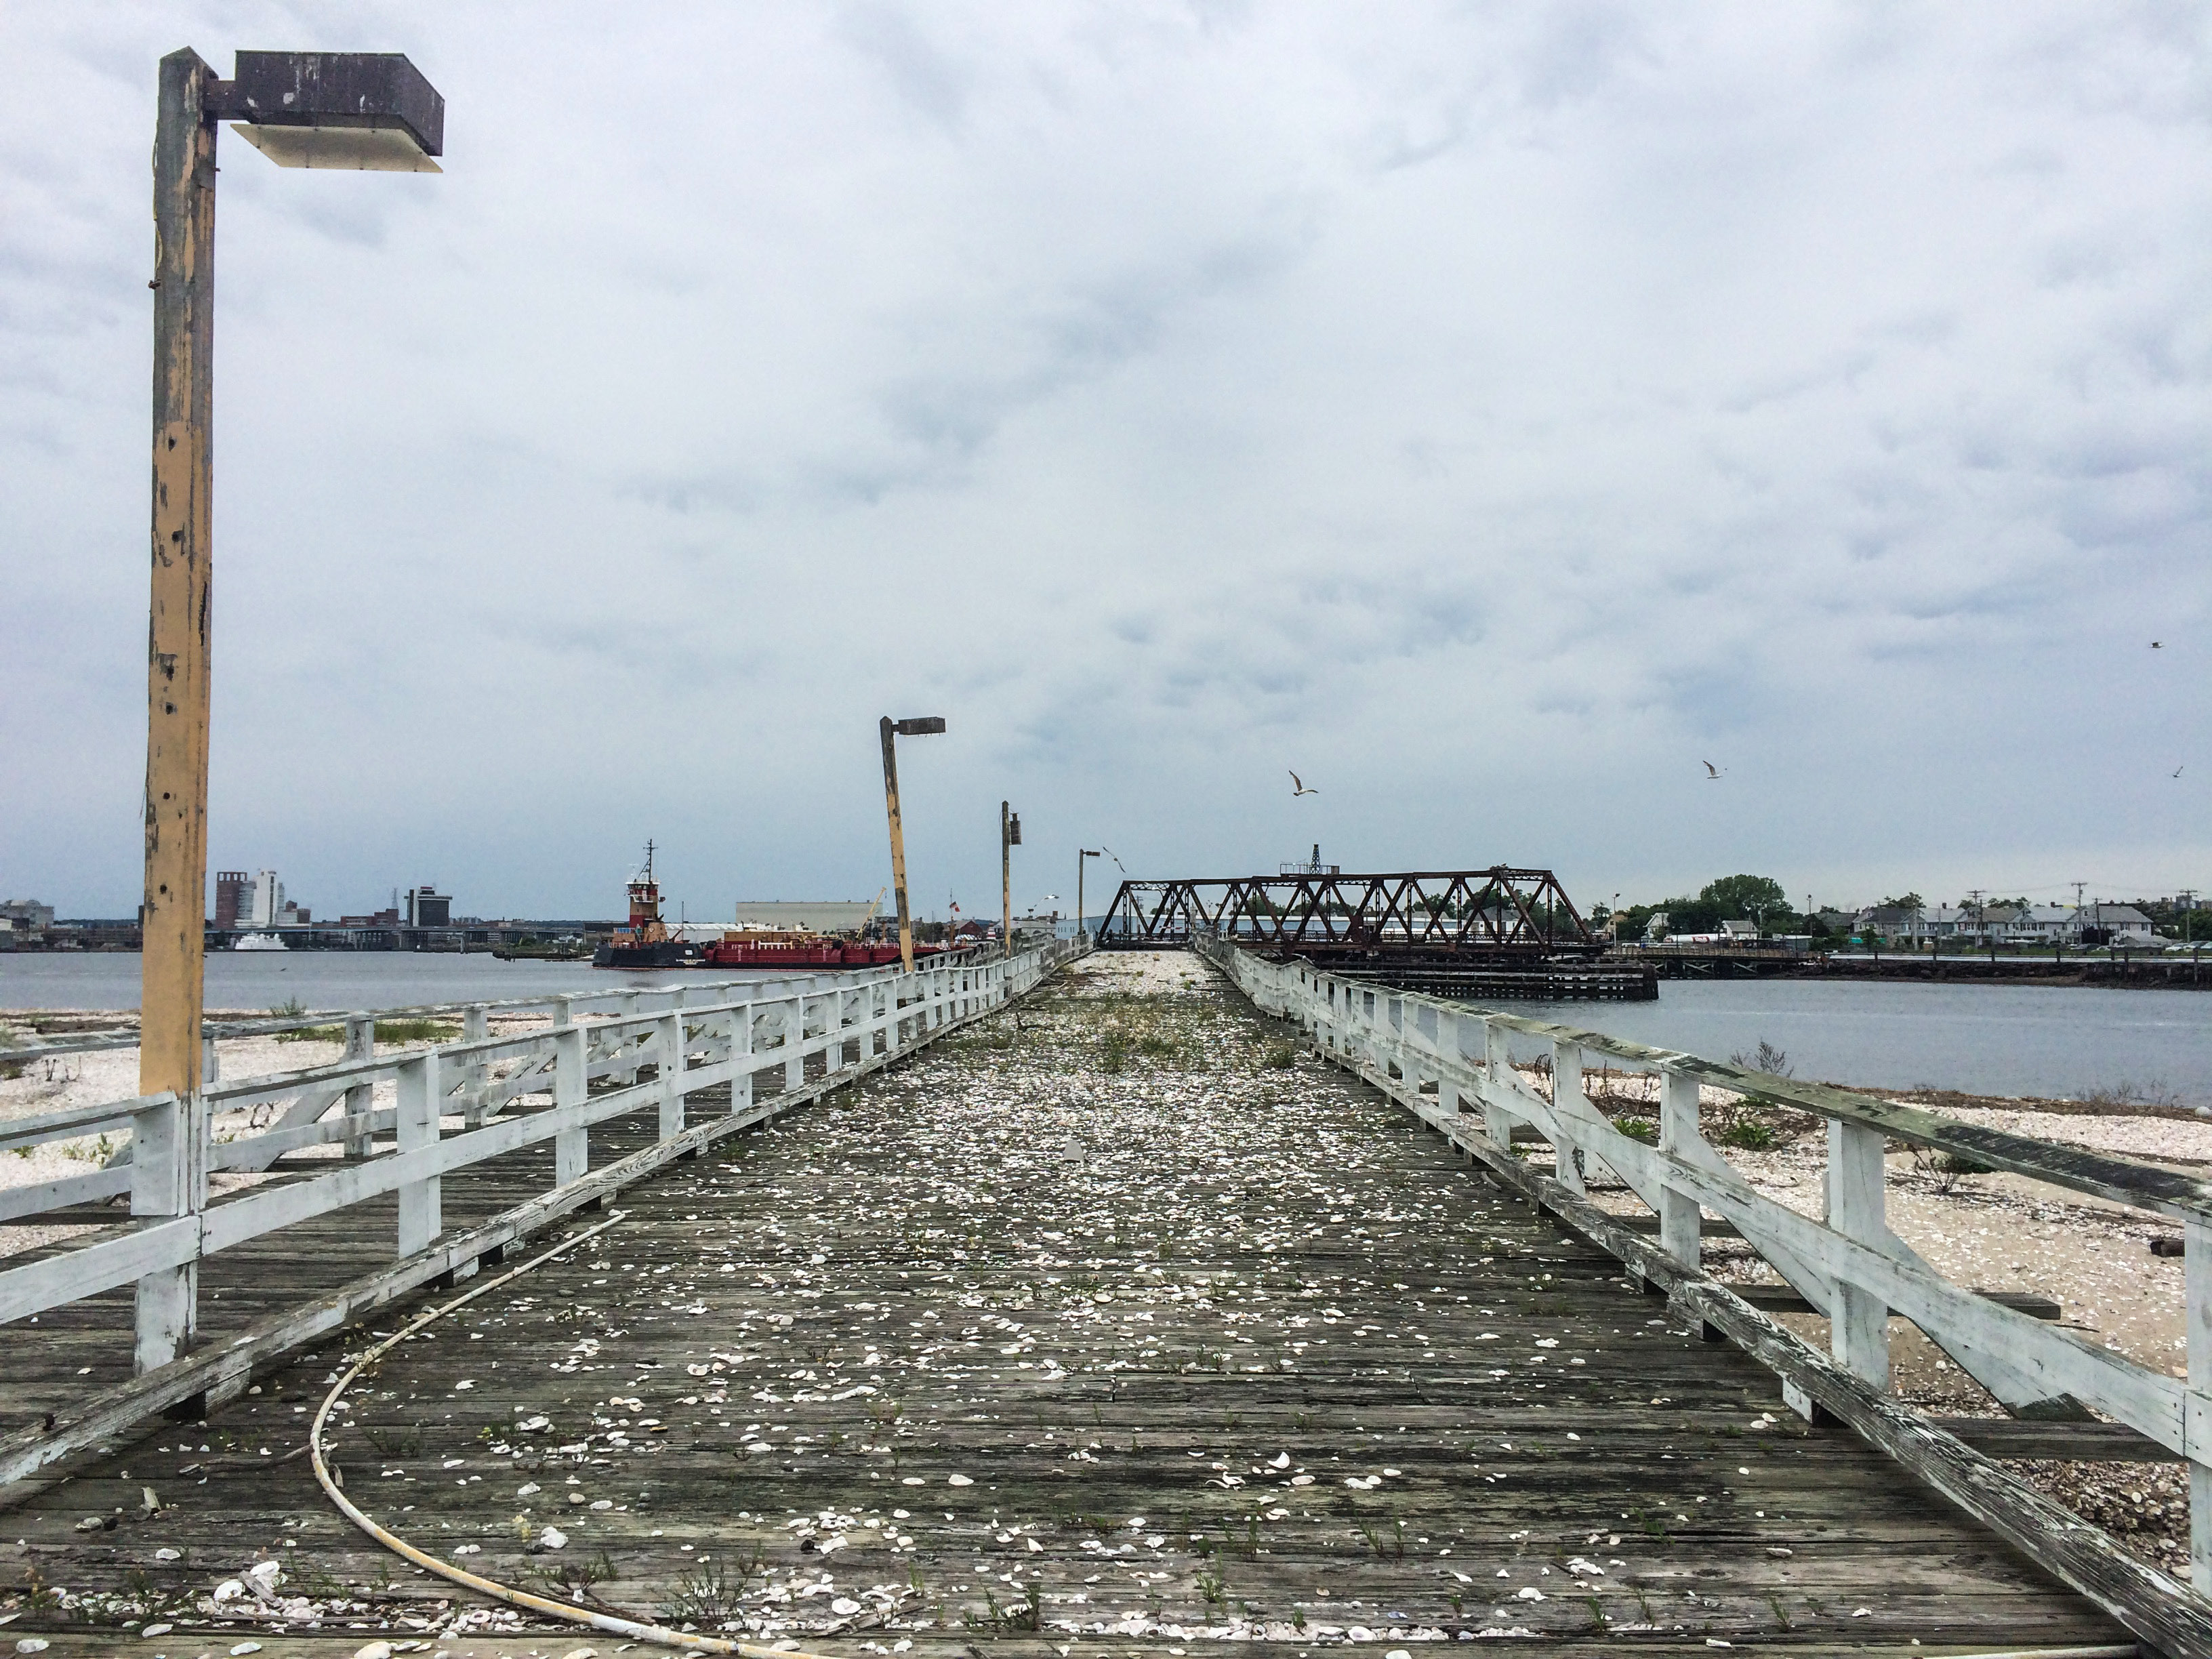 The old bridge connecting Pleasure Island to Bridgeport, which was destroyed in a fire. The bridge is now fenced off and beachgoers can use a free water taxi to get to Pleasure Island. | Richie Rathsack/Record-Journal